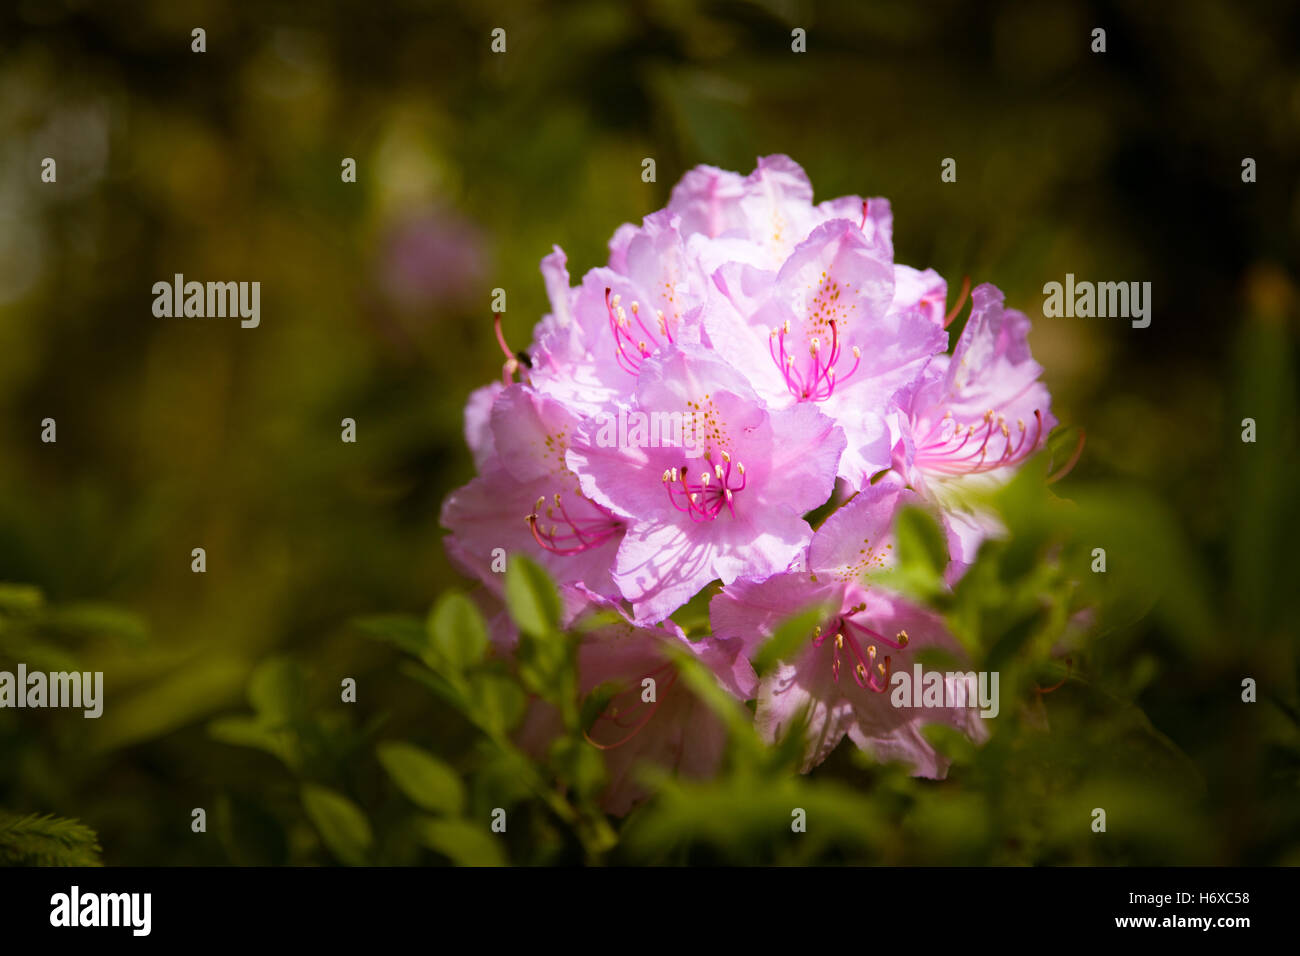 Beautiful rhododendron flowers in a forest garden stock photo beautiful rhododendron flowers in a forest garden izmirmasajfo